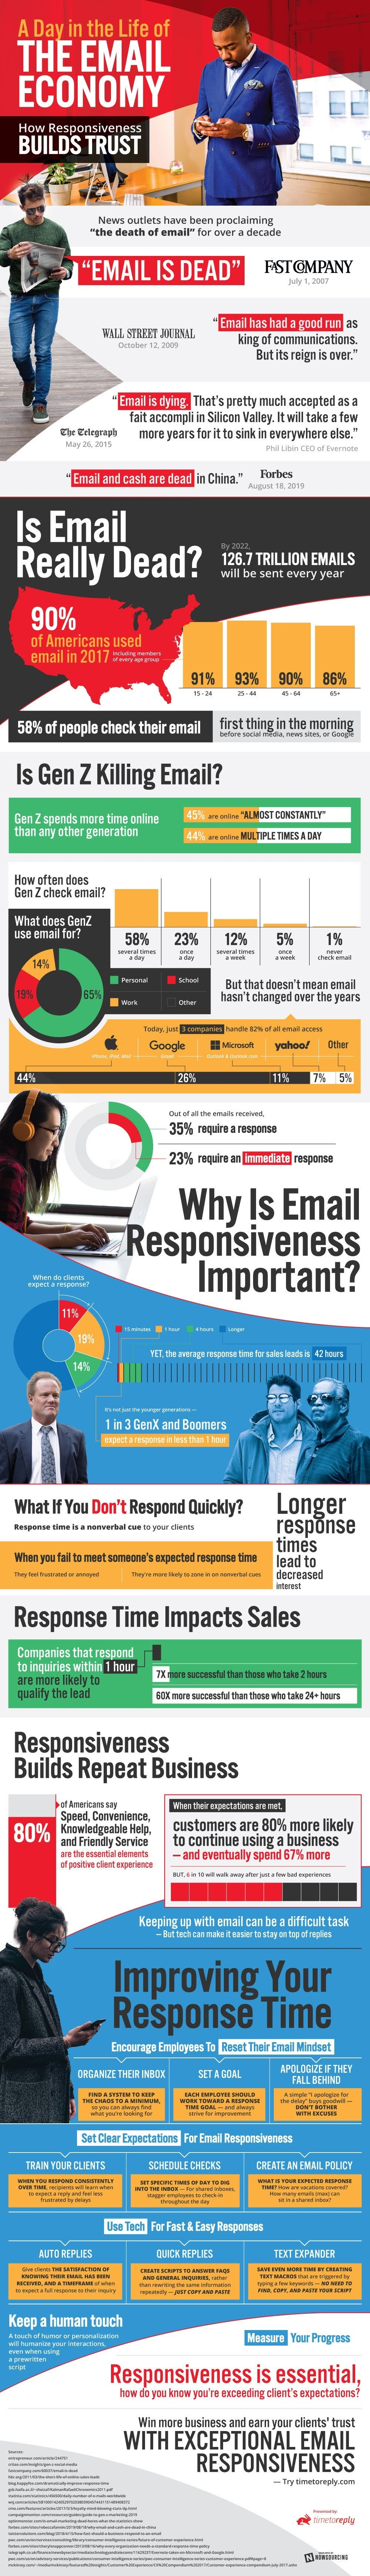 Success Through Email Responsiveness #infographic